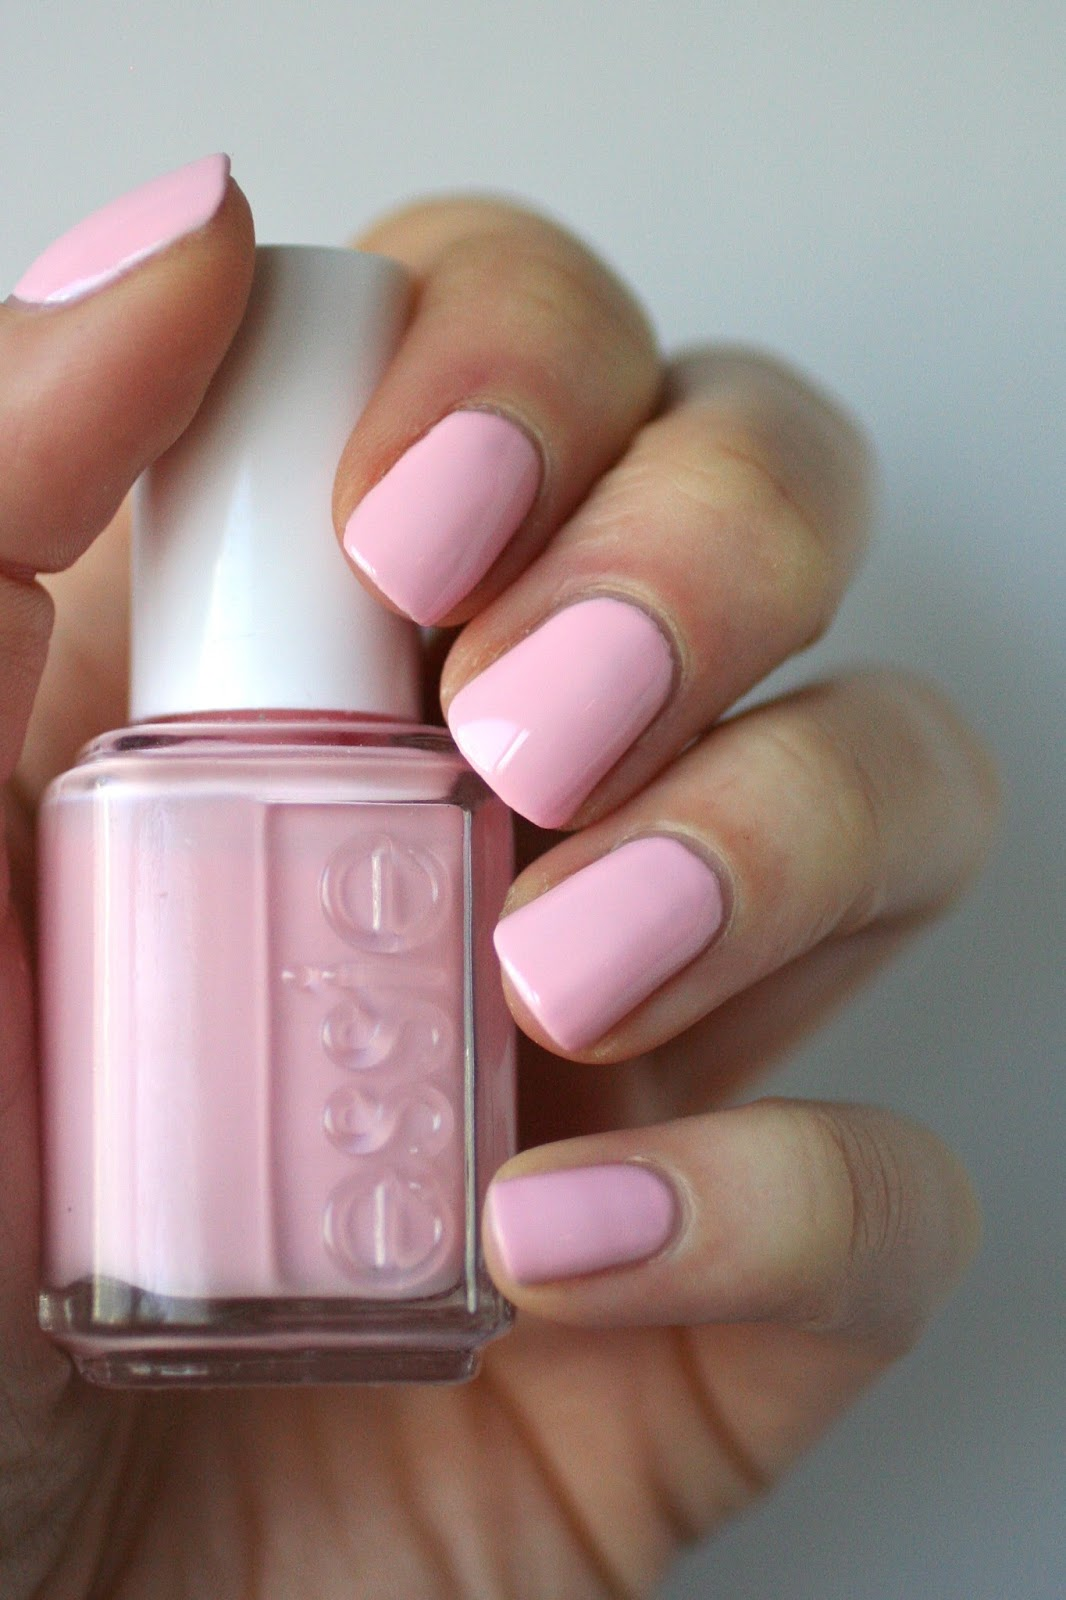 Classics Essie Fiji Was It Reformulated Essie Envy